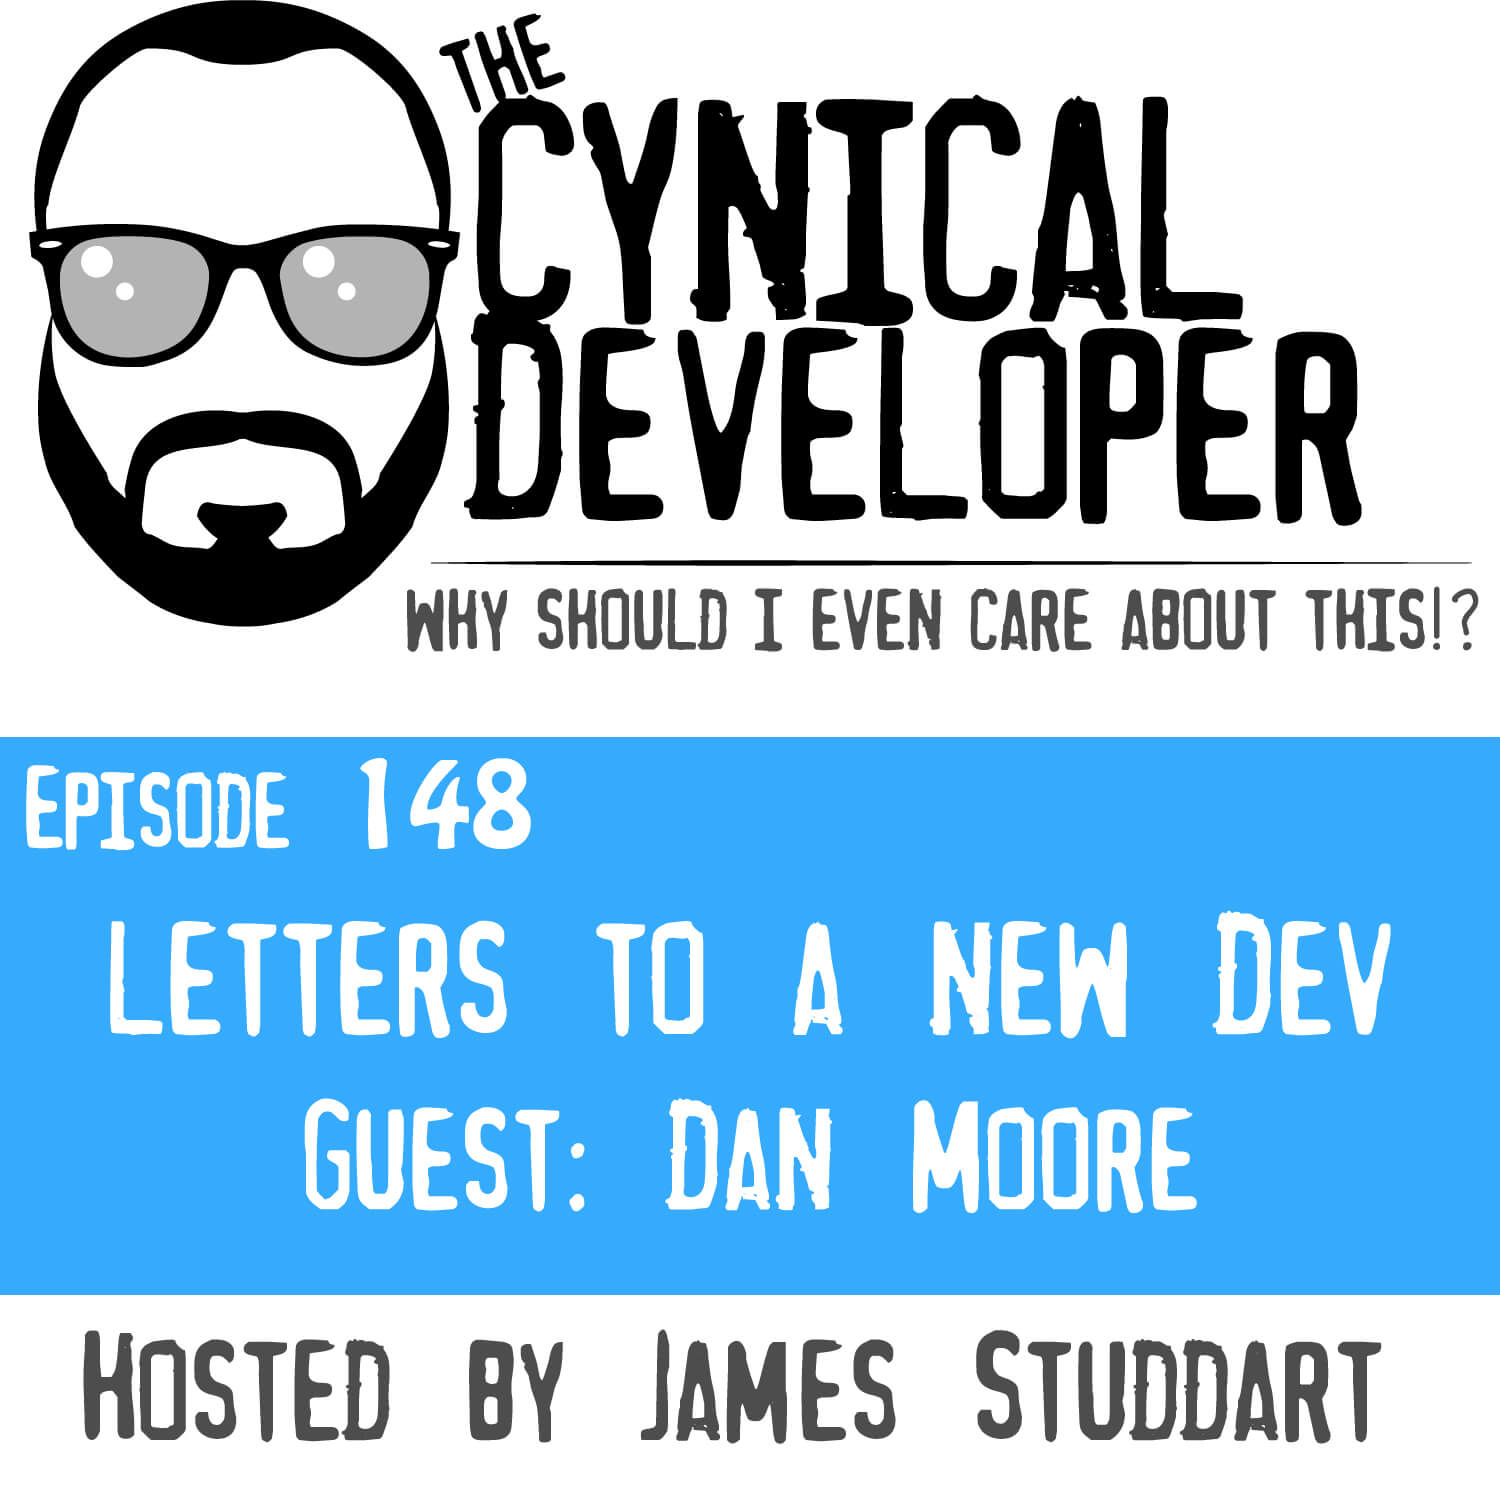 Episode 148 - Letters to a new dev